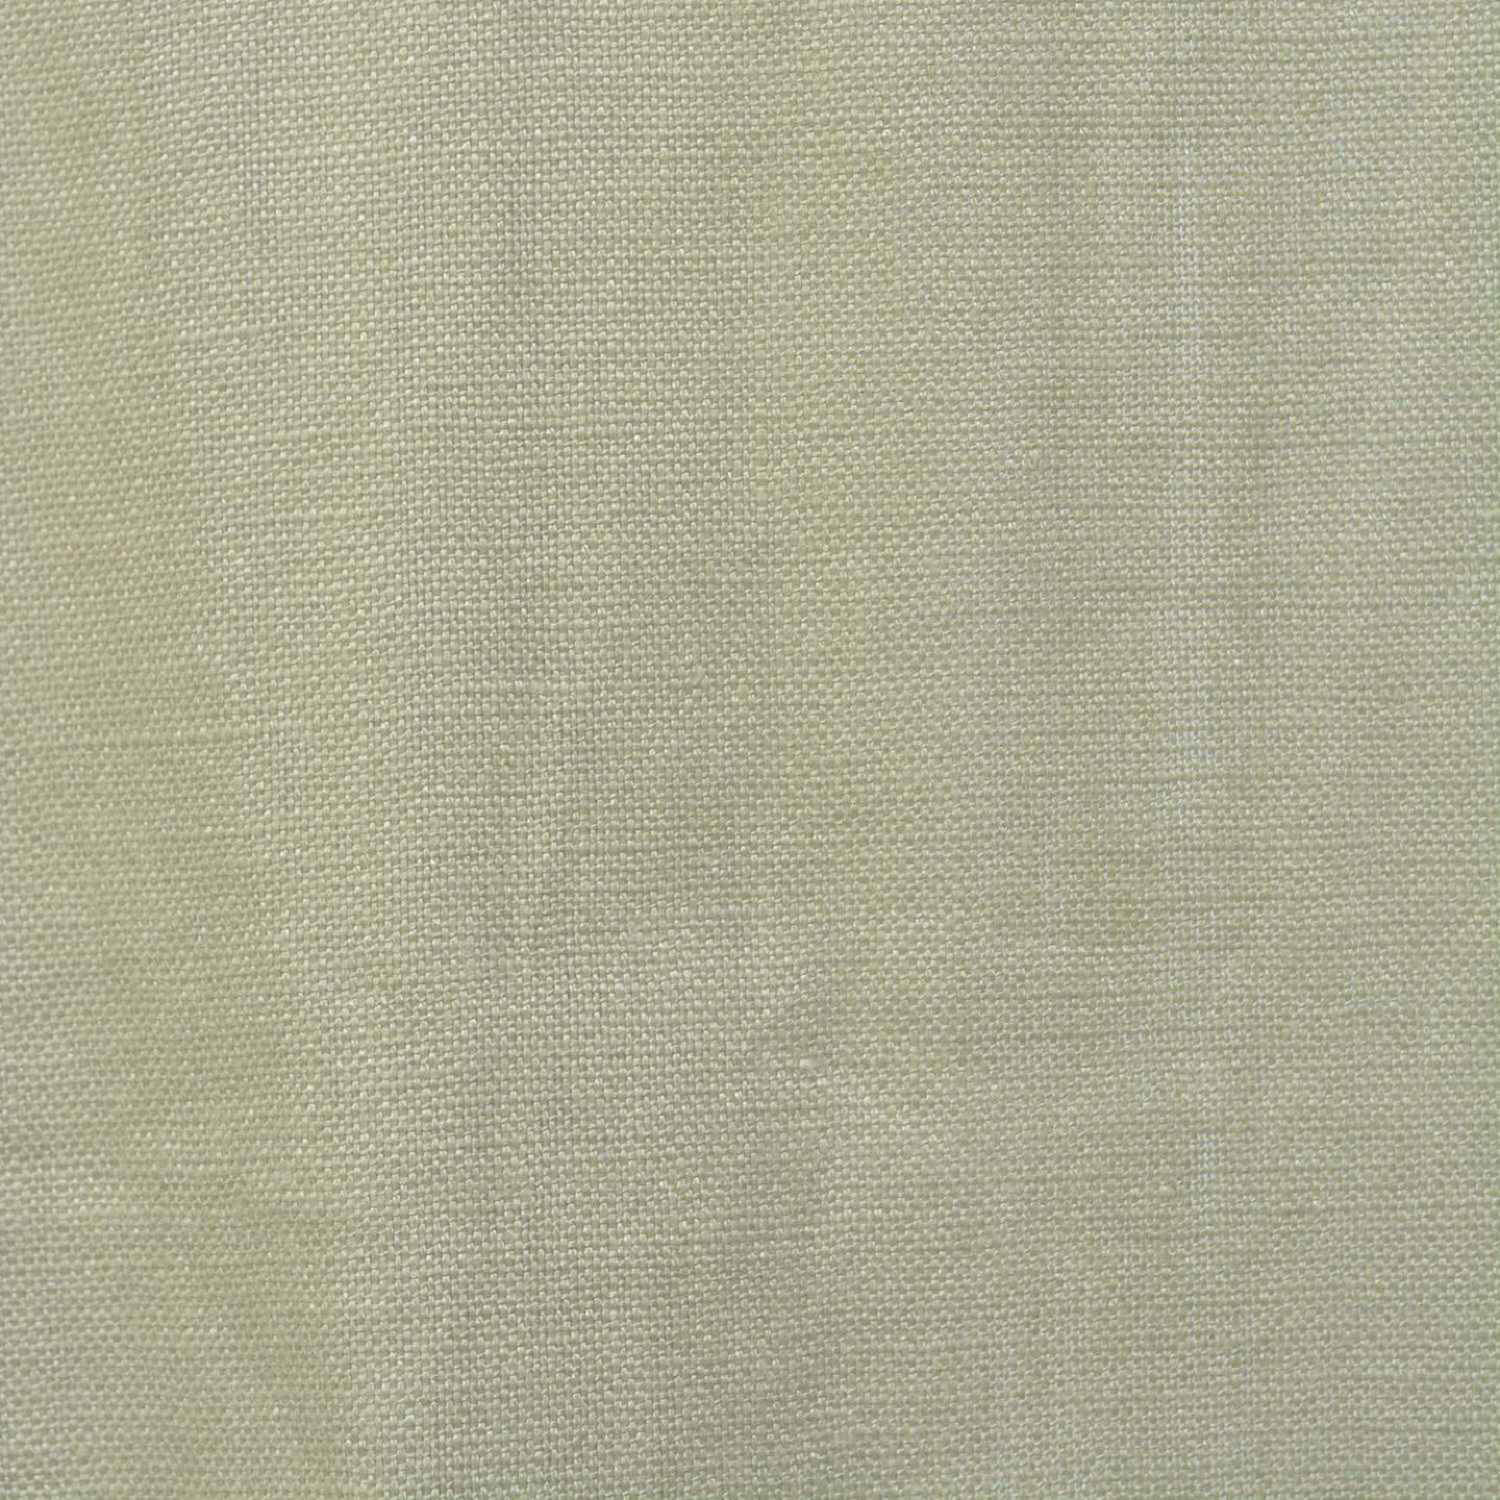 Khaki French Linen Swatch